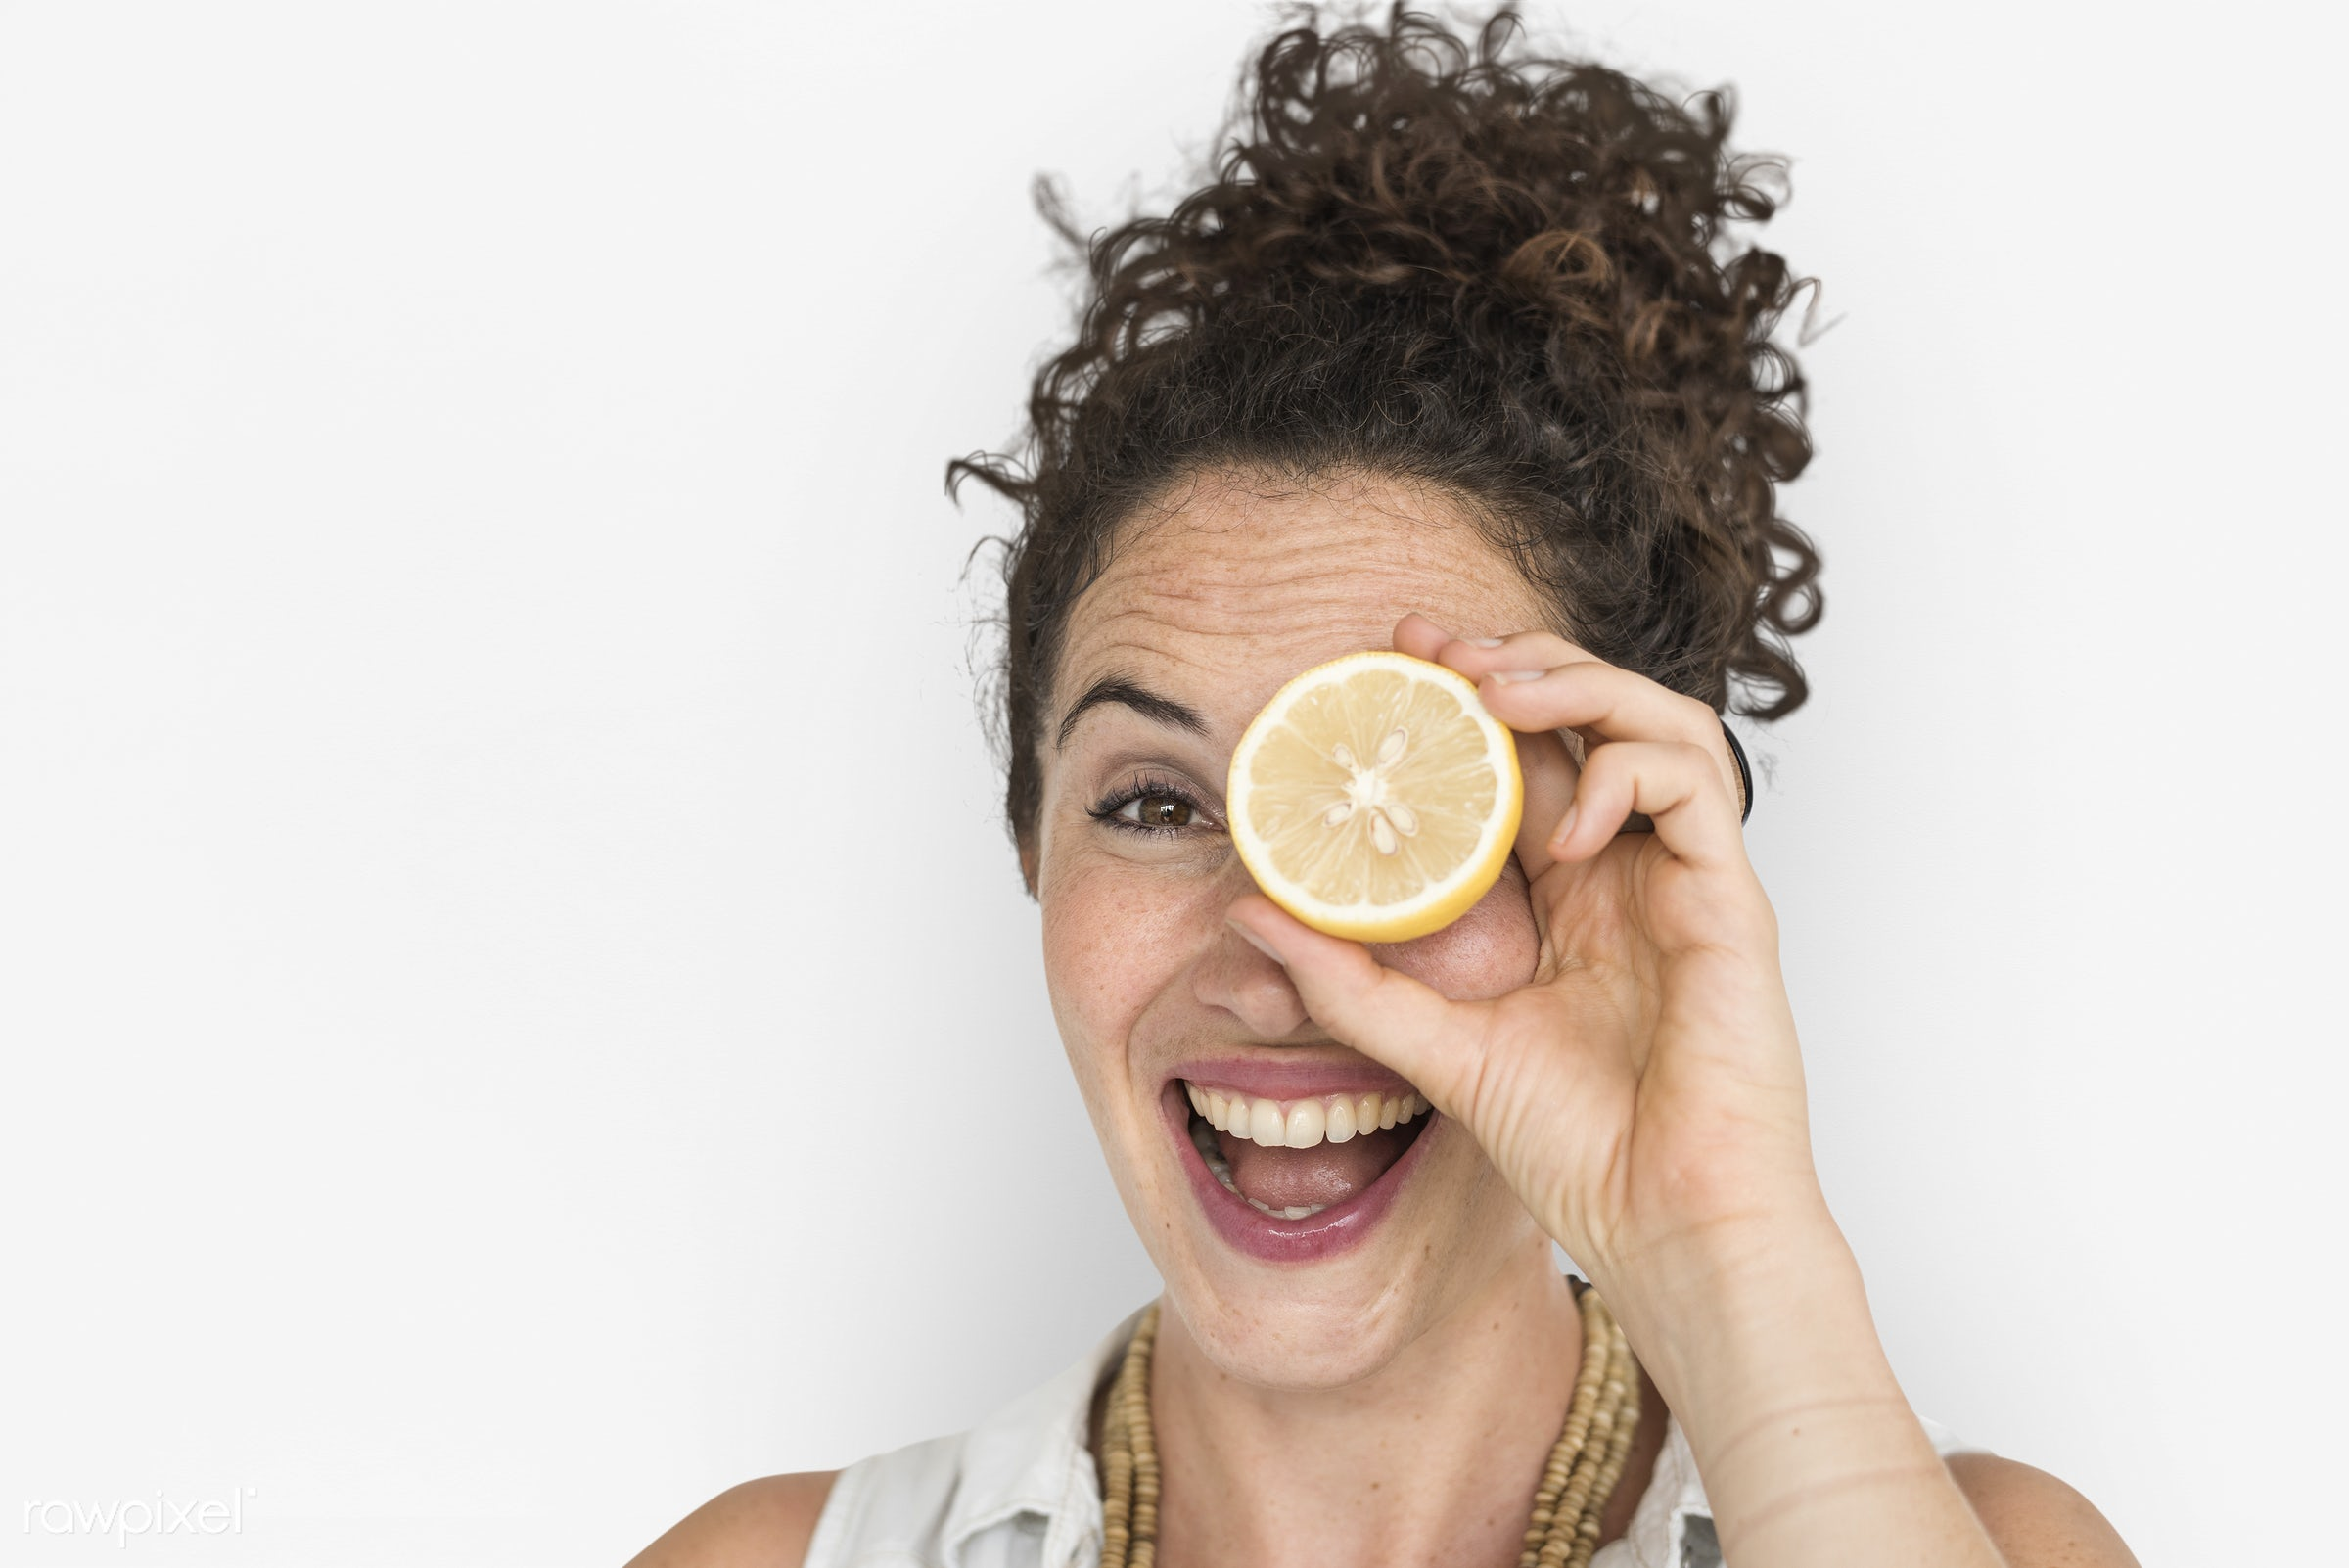 studio, expression, person, people, eyes, cover, woman, cheerful, smiling, isolated, fruit, white, human hand, happiness,...